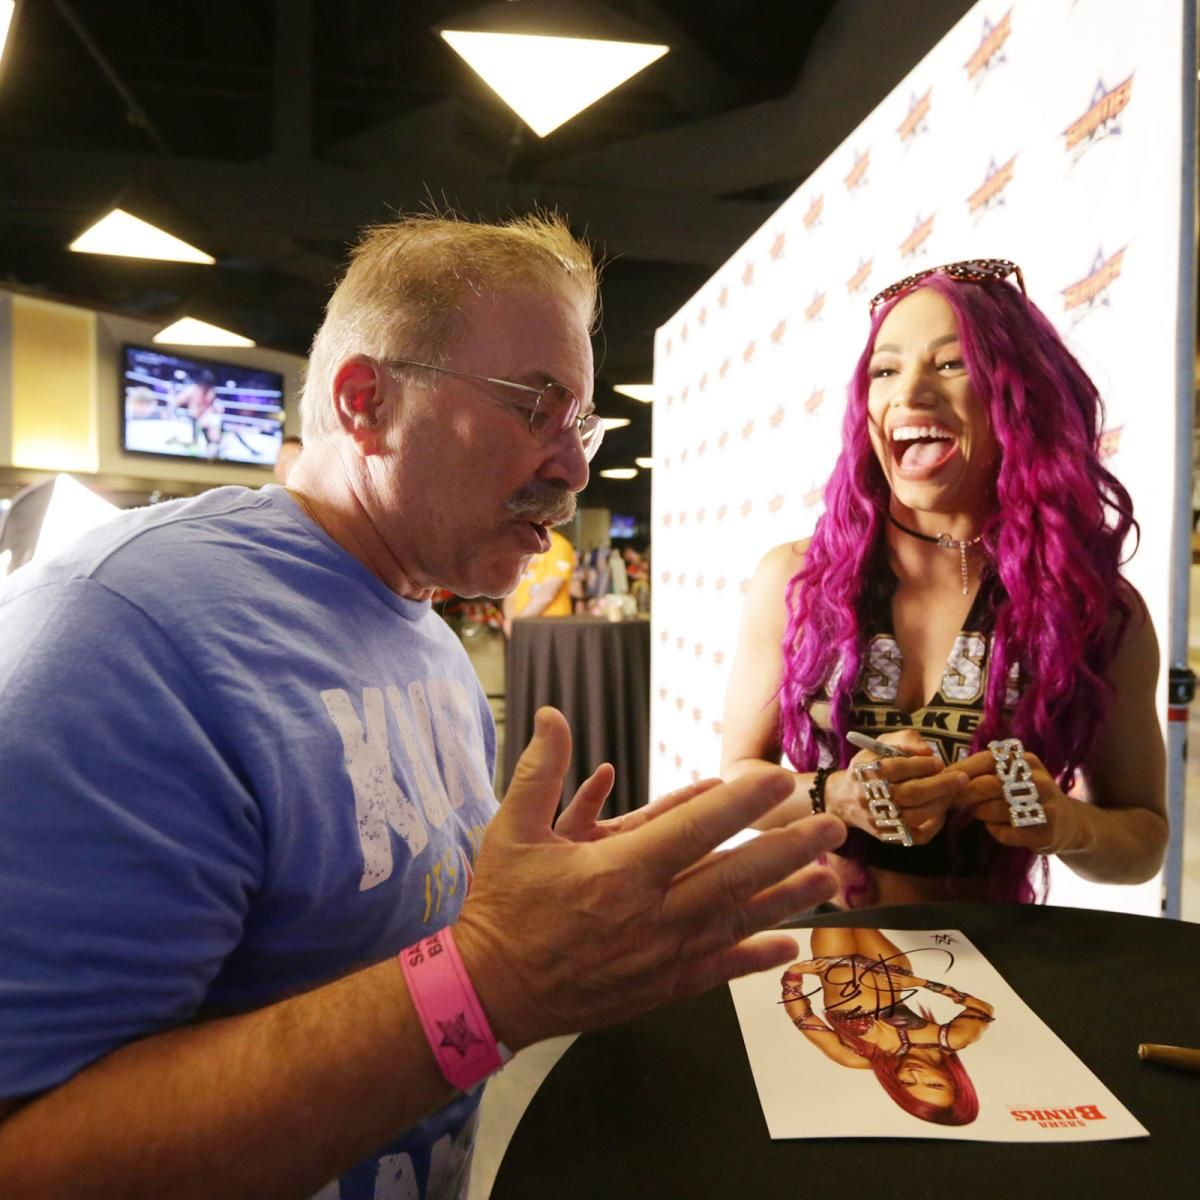 The hardy boyz and sasha banks mingle with the wwe universe at the hardy boyz and sasha banks mingle with the wwe universe at summerslam meet greet kristyandbryce Choice Image